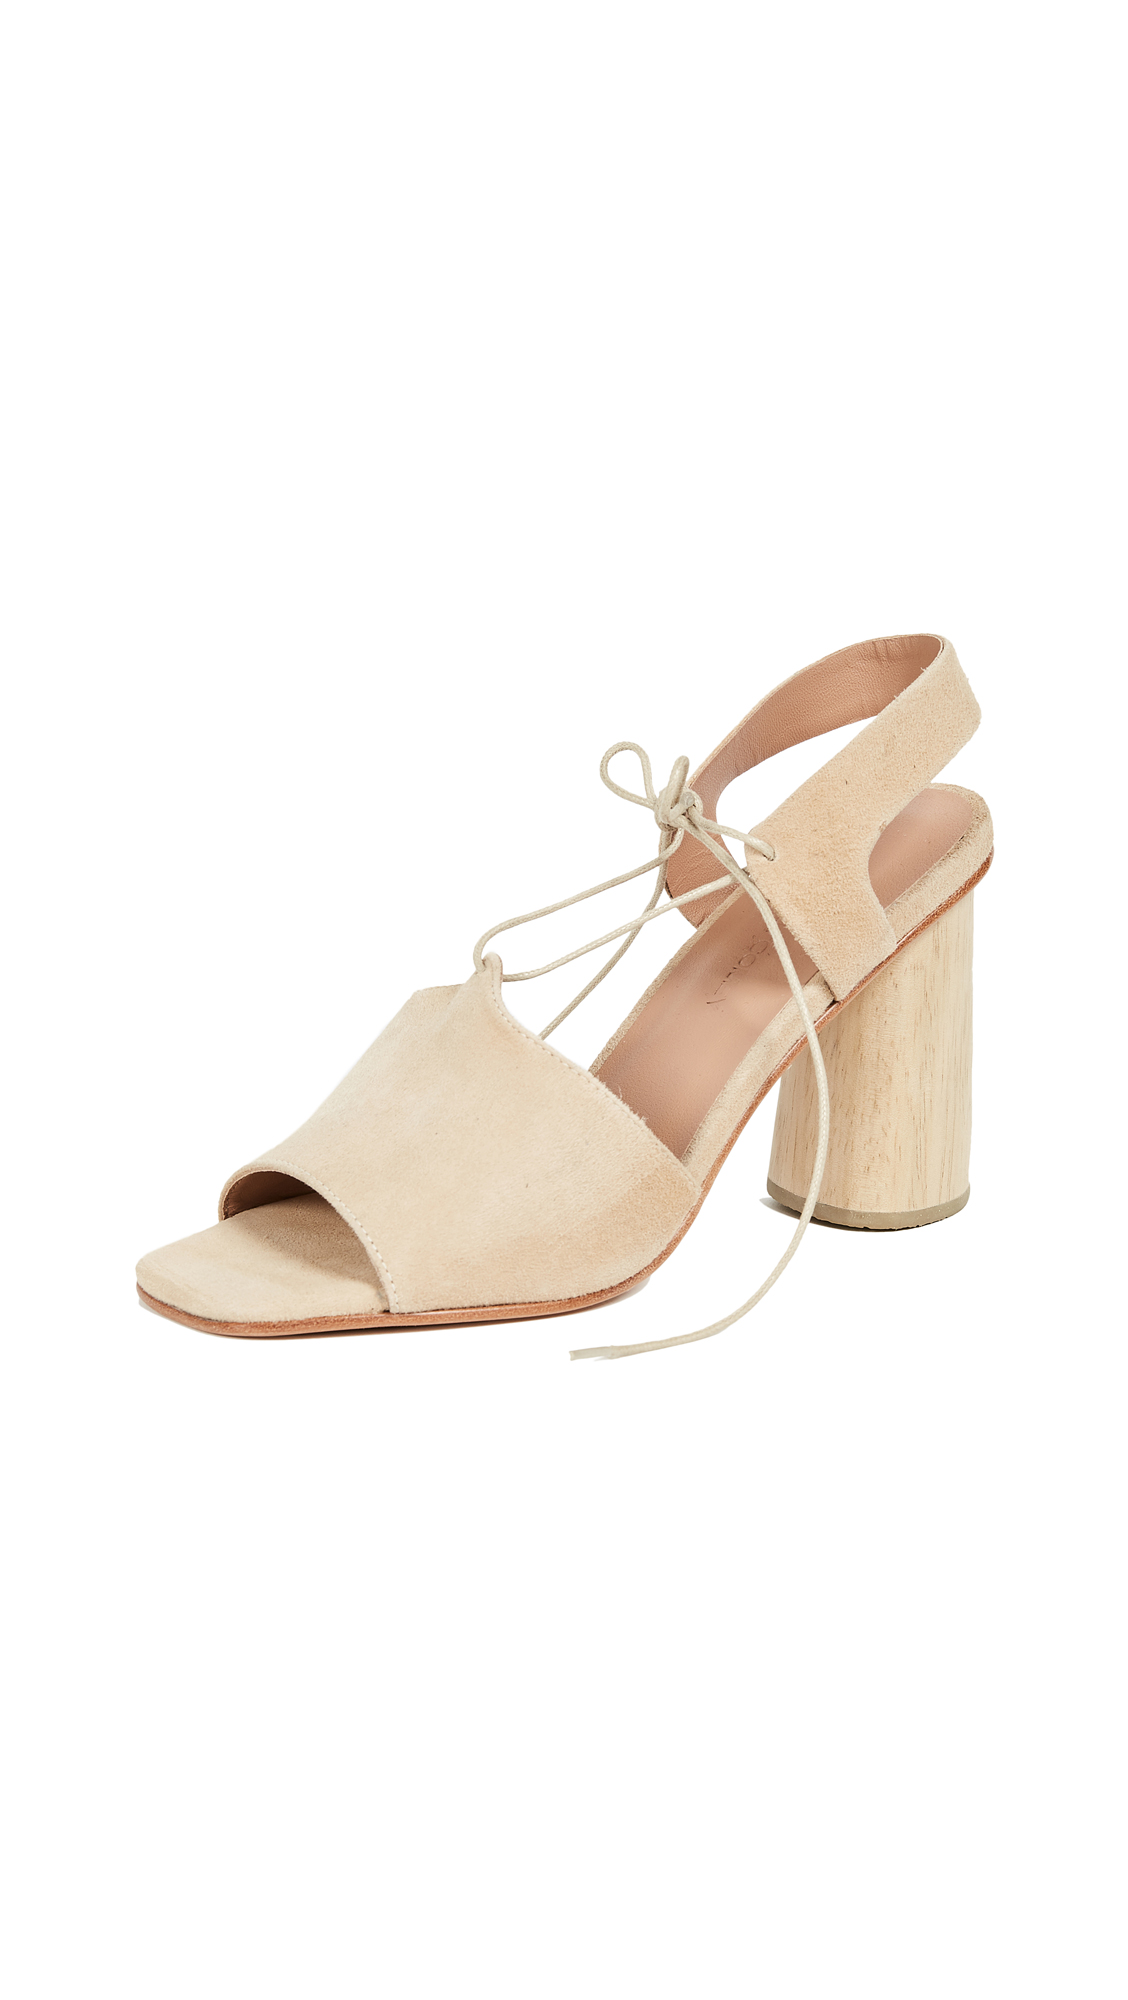 Rachel Comey Melrose Sandals In Sand